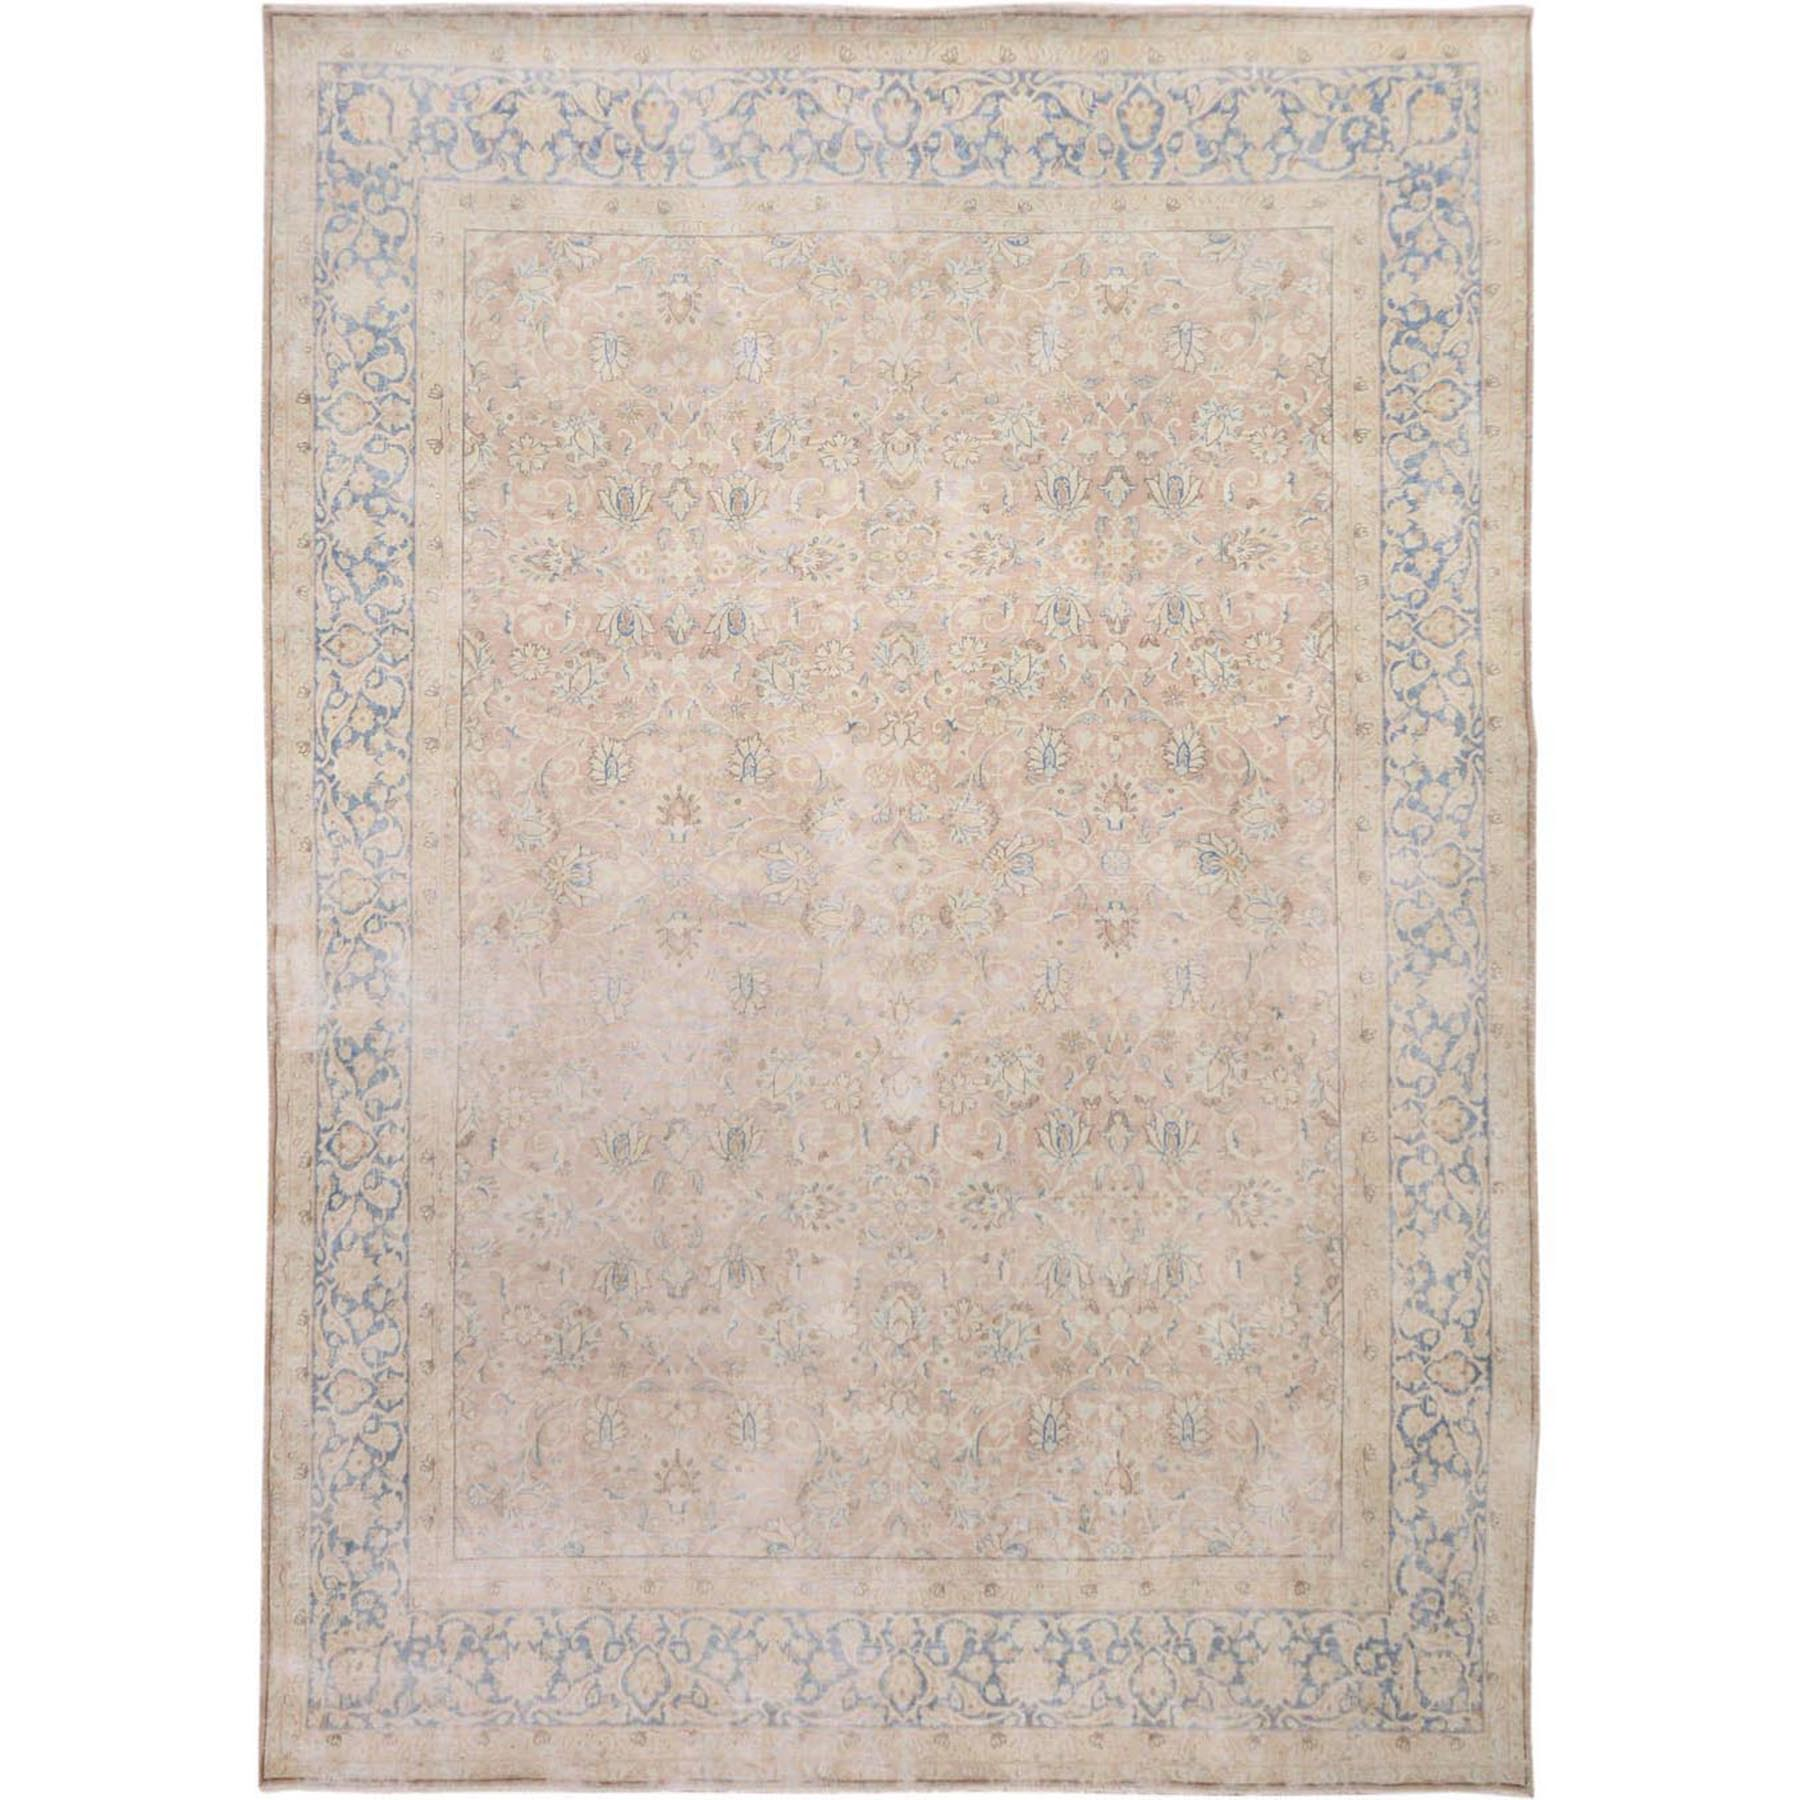 Fetneh Collection And Vintage Overdyed Collection Hand Knotted Pink Rug No: 1114832